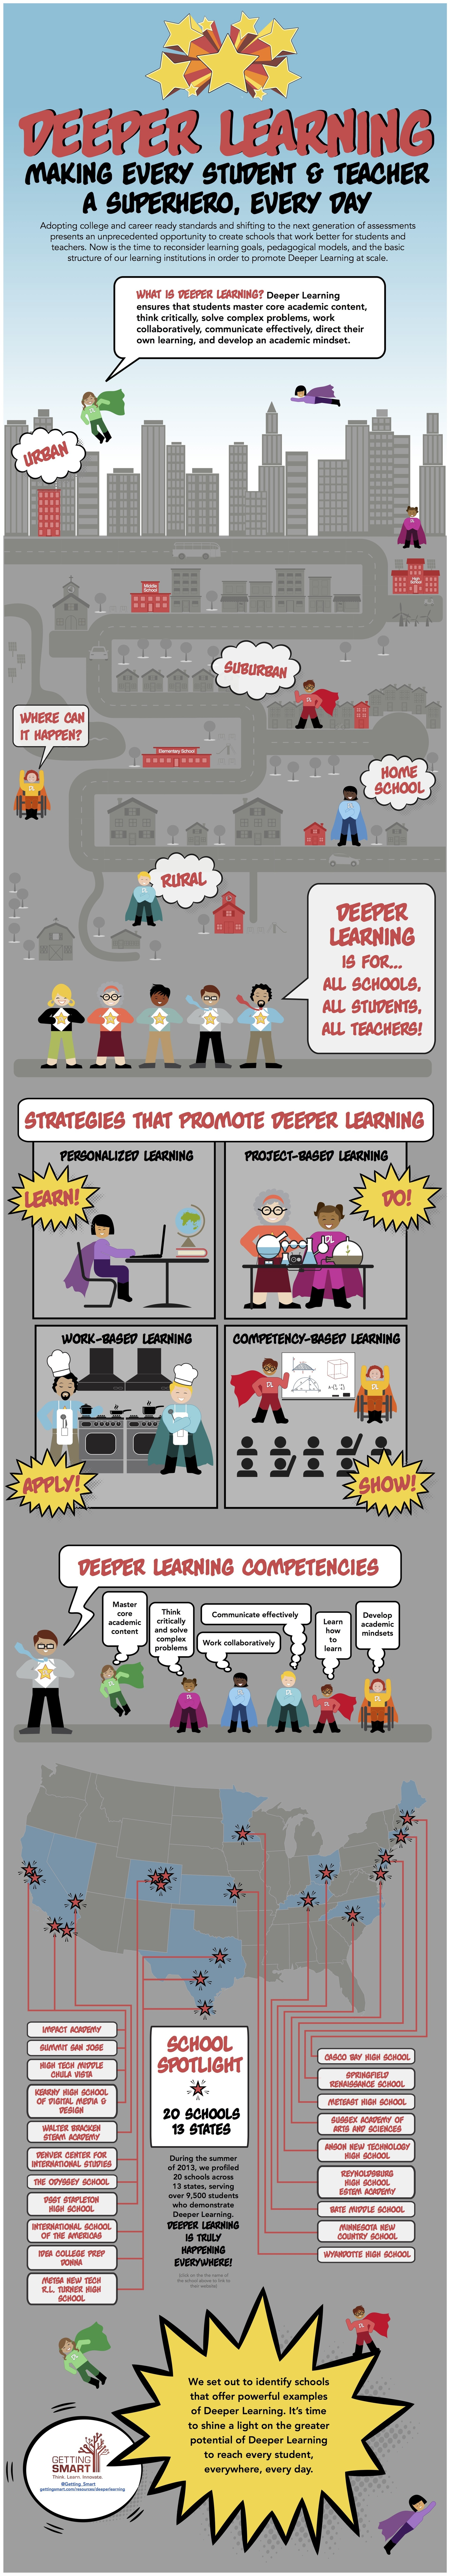 Deeper-Learning-Infographic